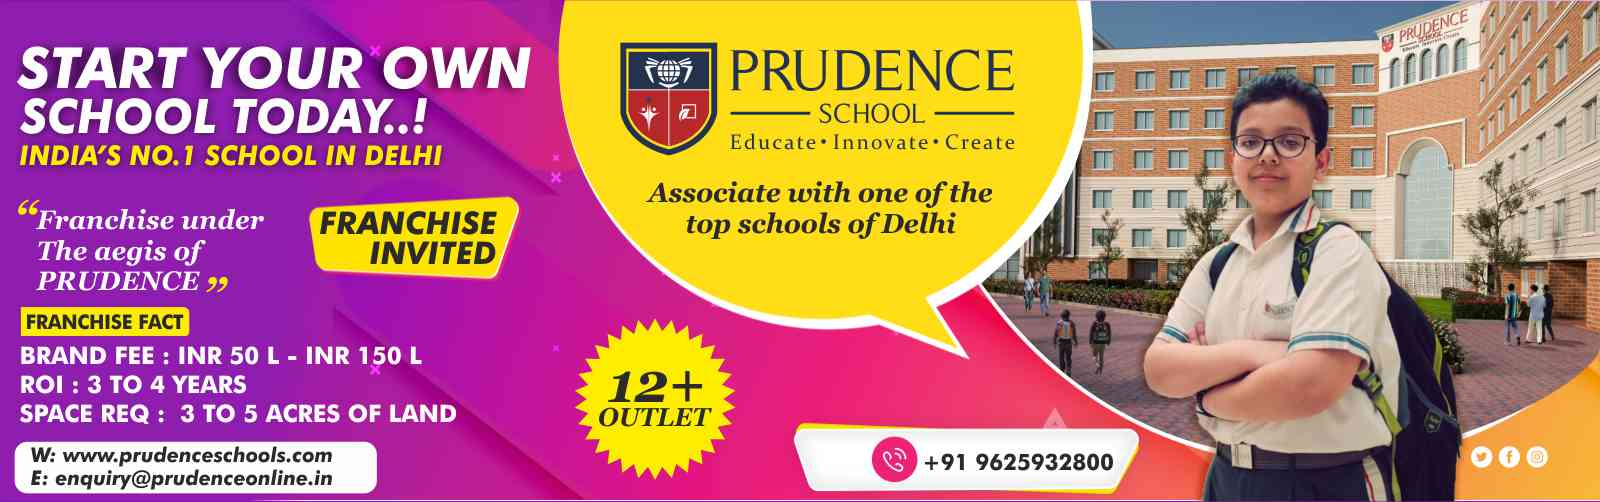 admin/uploads/brand_registration/Prudence School (India's No.1 School Franchise Opportunity)